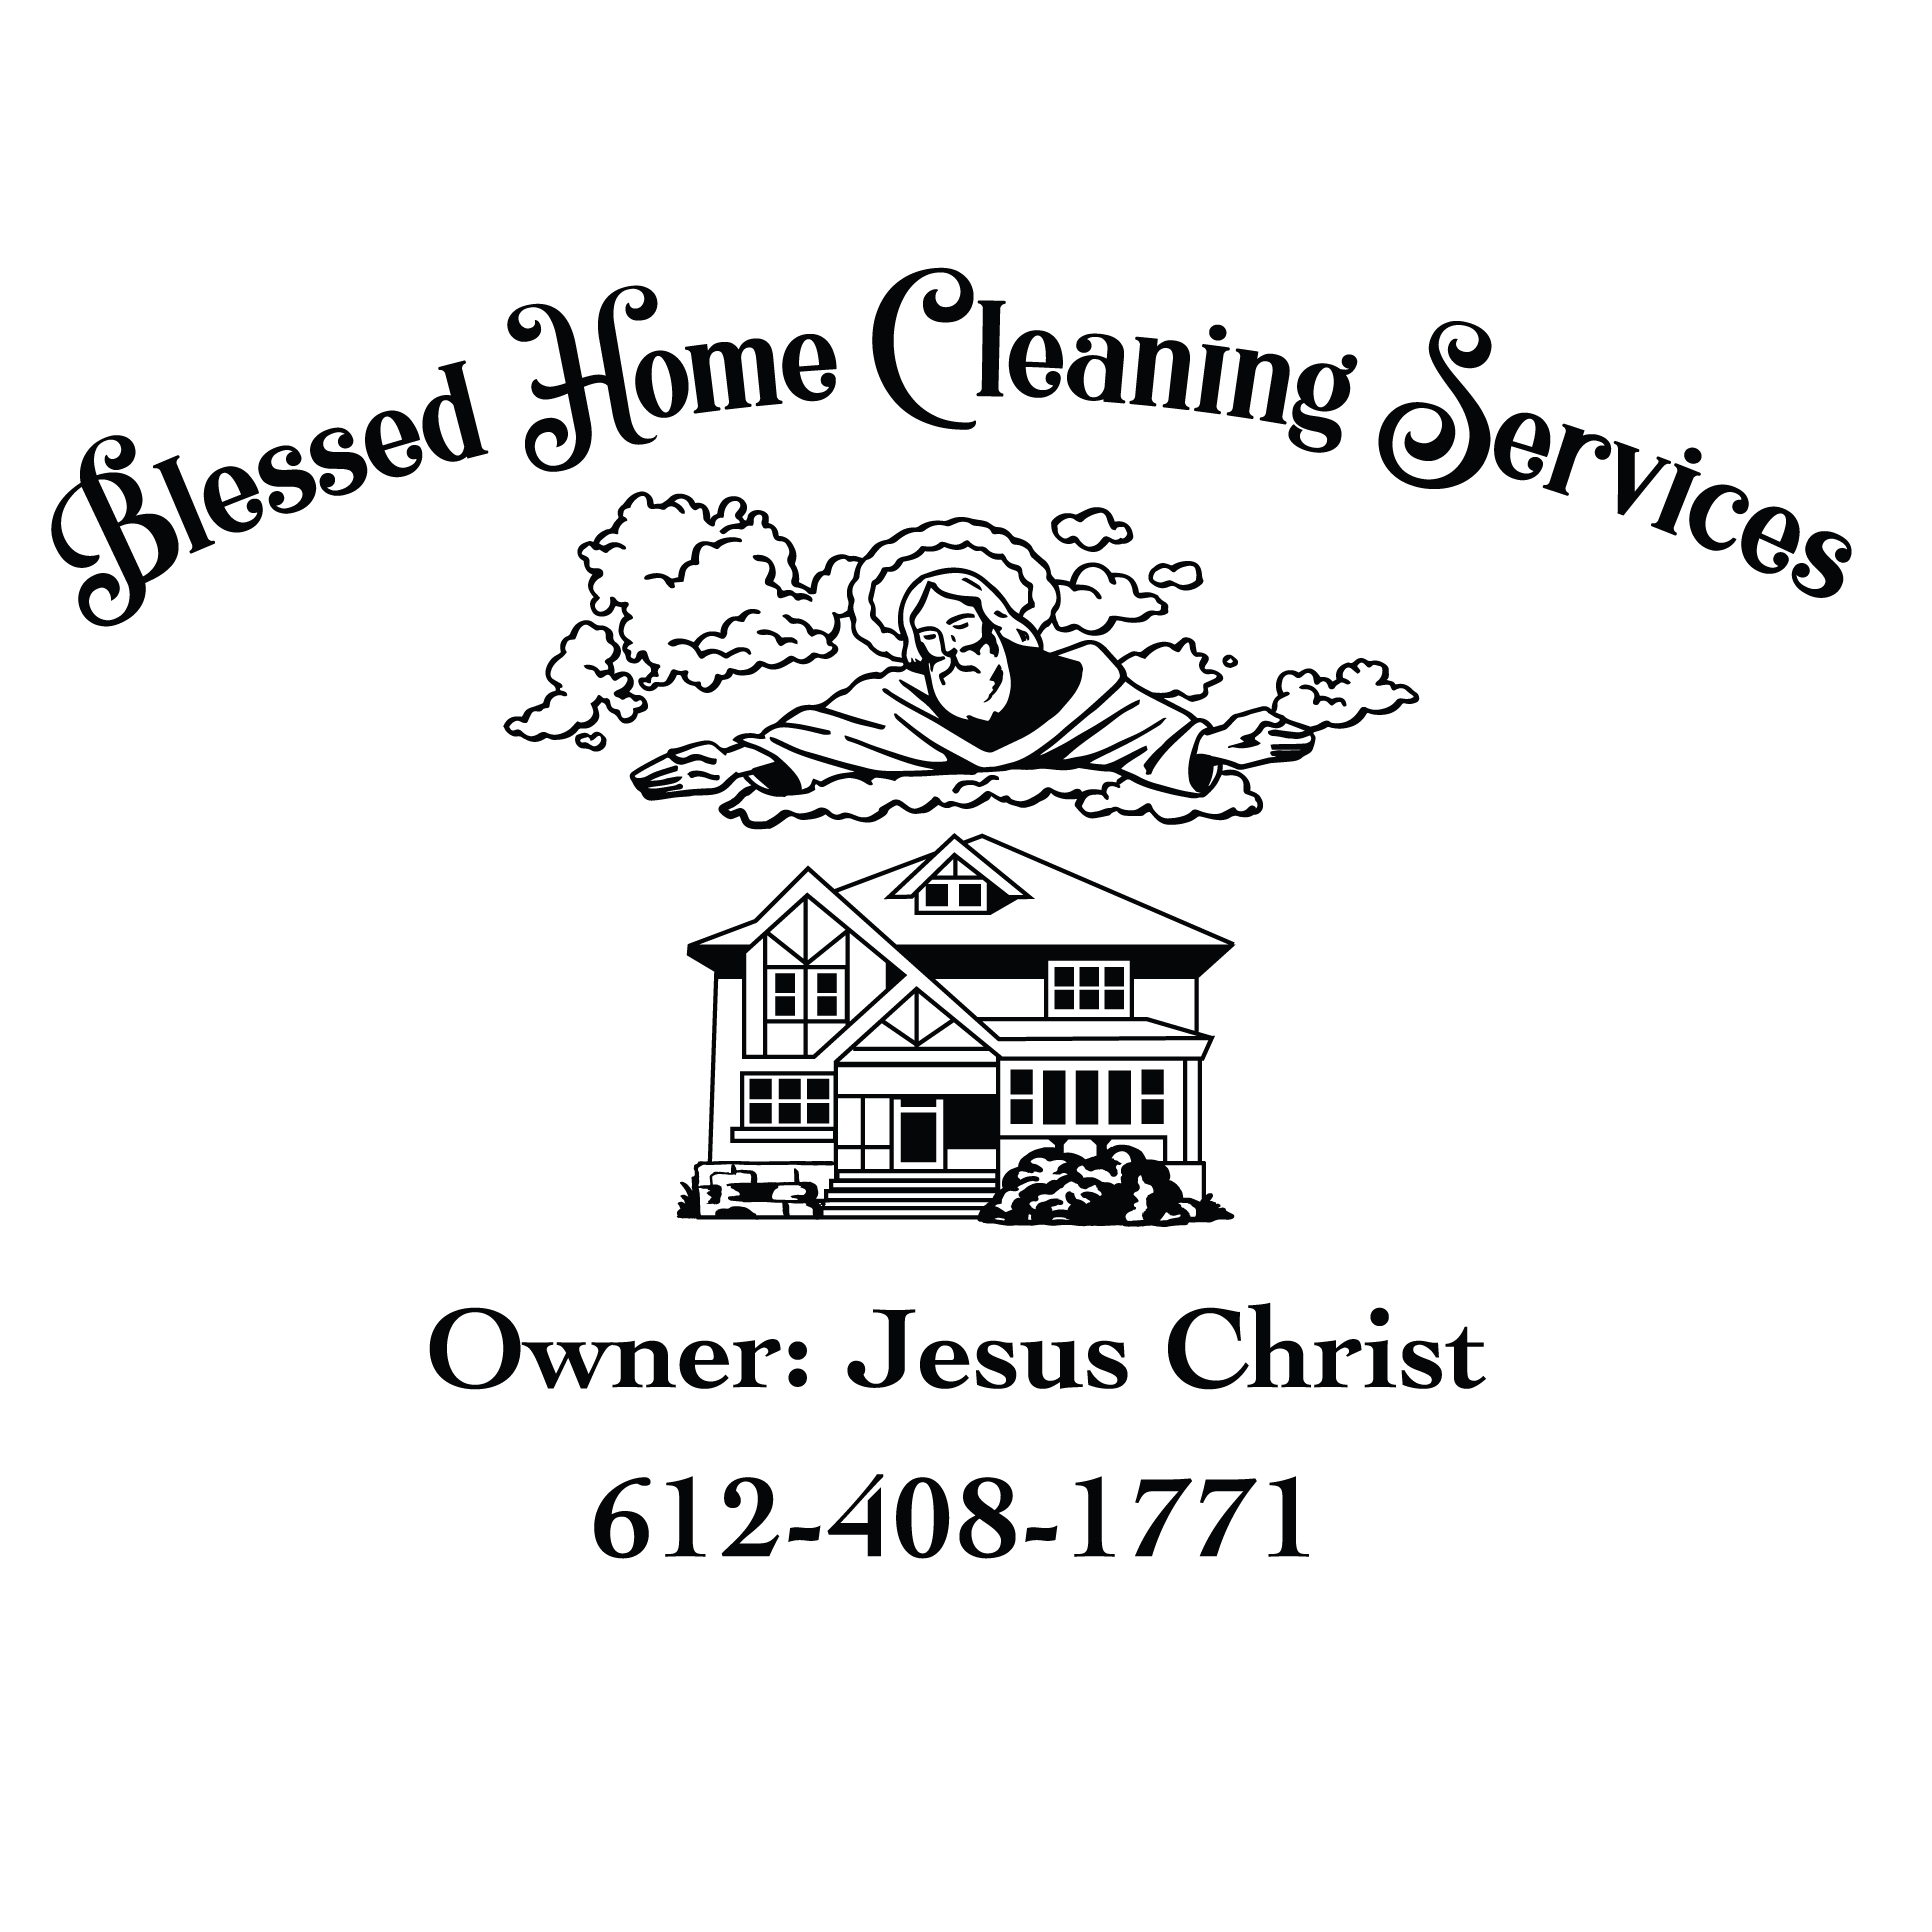 Blessed Home Cleaning Services, Christ Inc.